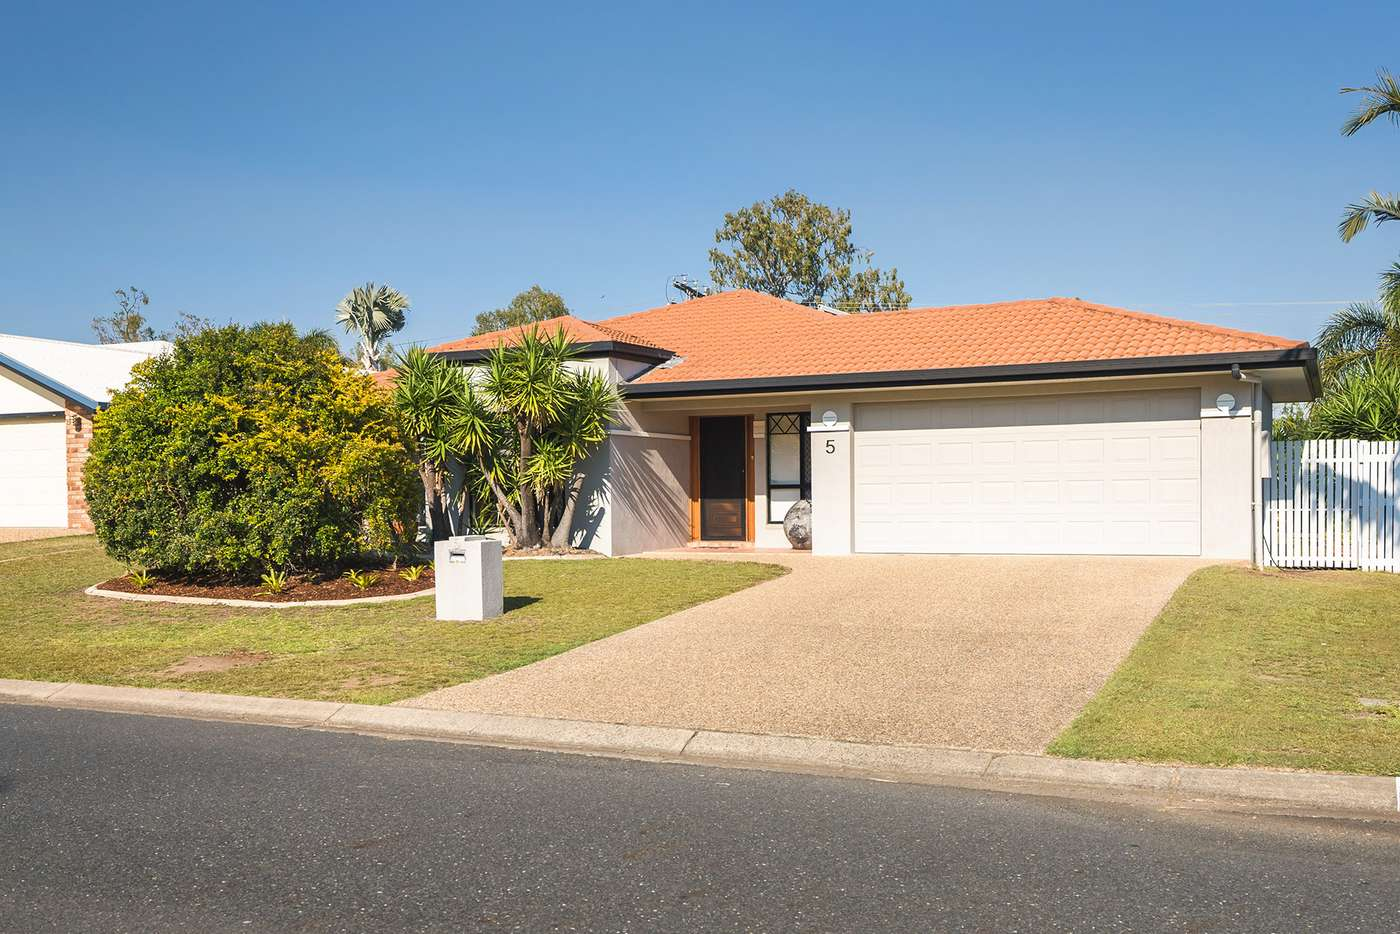 Main view of Homely house listing, 5 Brookside Avenue, Norman Gardens QLD 4701